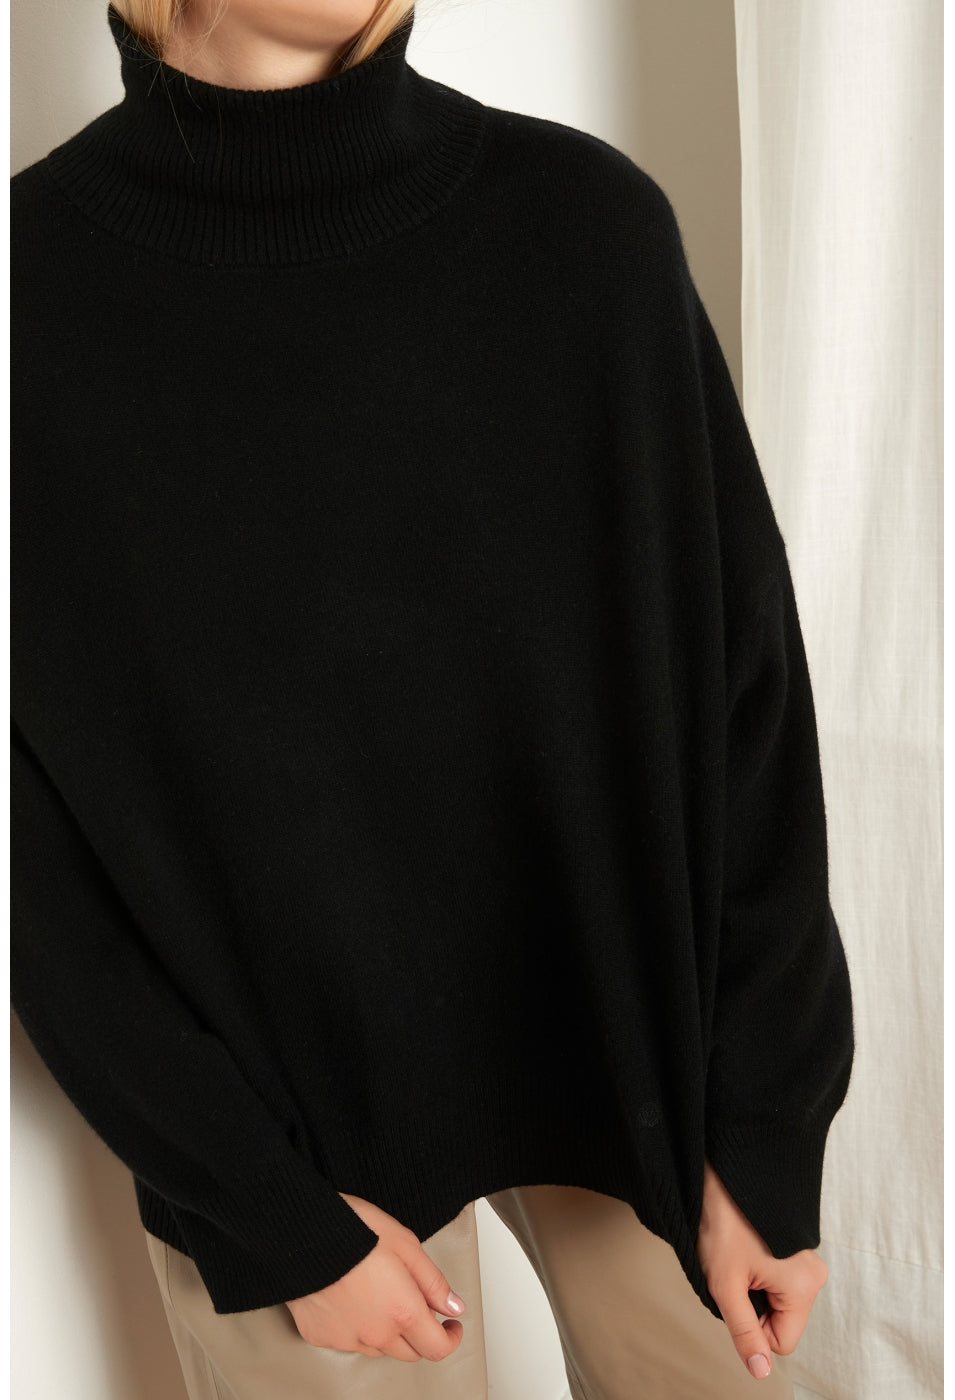 MURANO TURTLENECK SWEATER IN BLACK BY LOULOU STUDIO